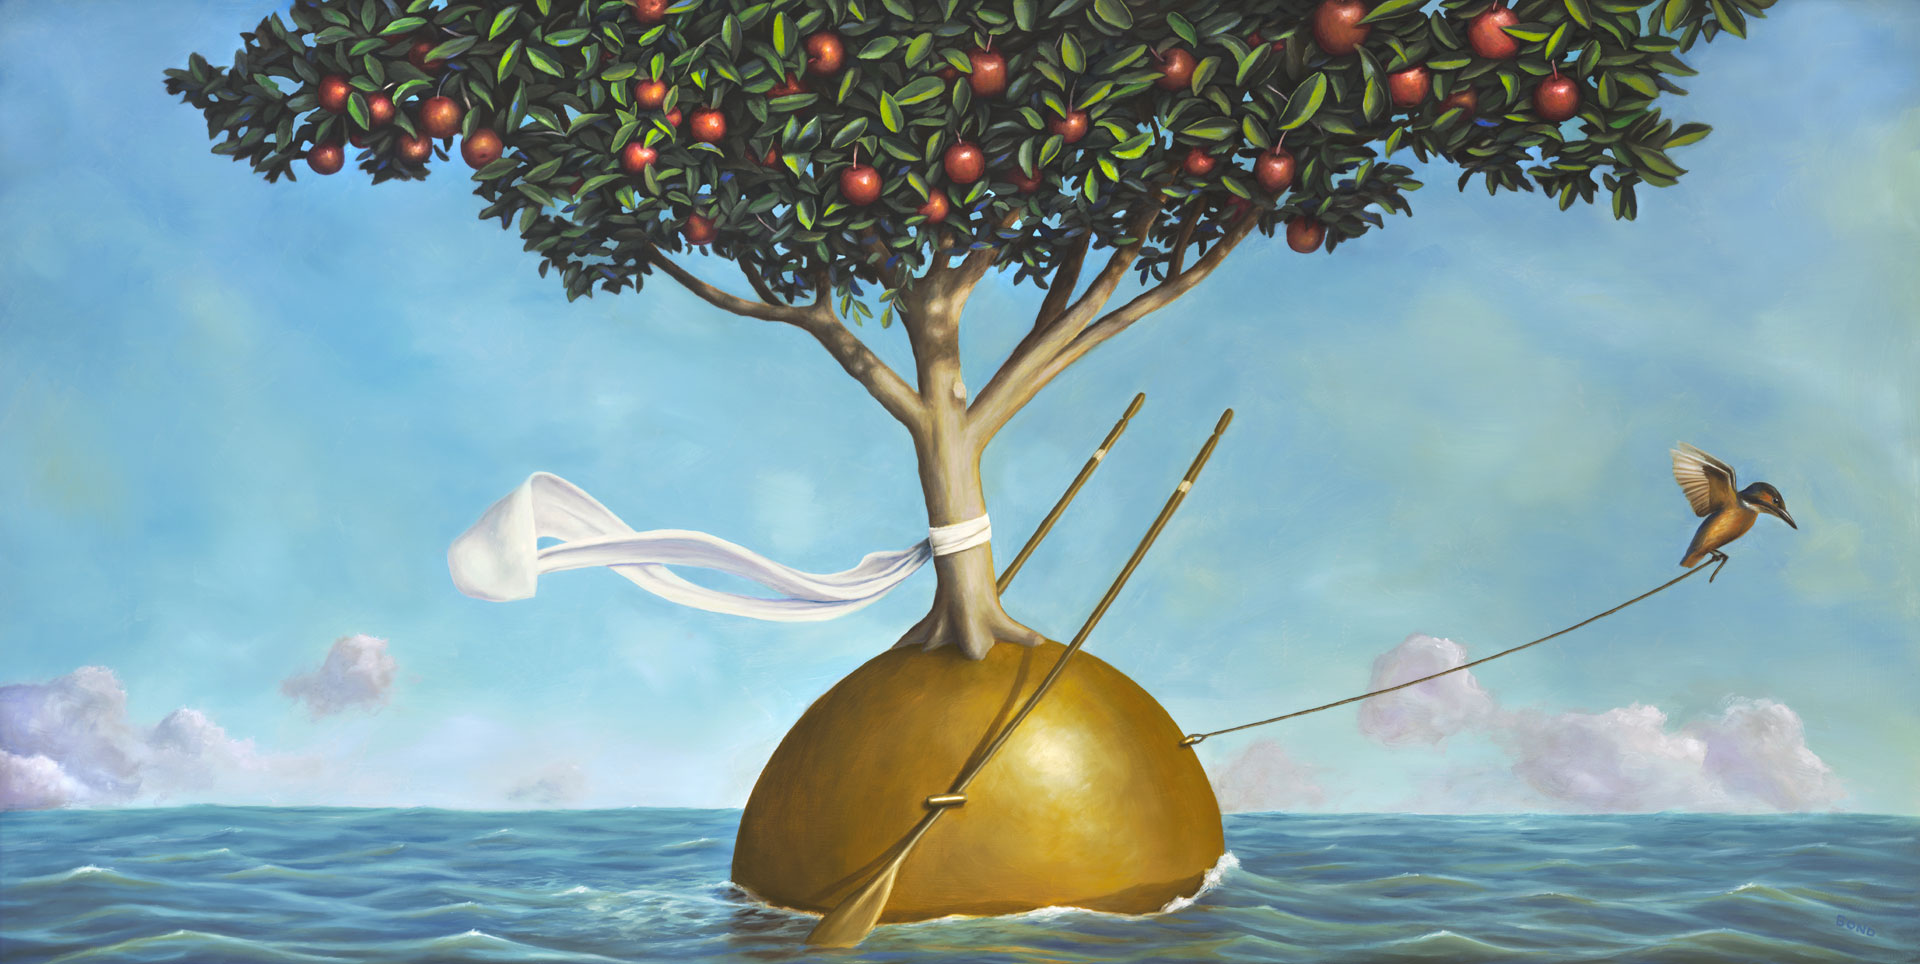 Passage of the Wisdom Keeper, painting of a kingfisher bird pulling an apple tree wearing a scarf with rope through the ocean, wisdom, apple, tree, sea, waves, oars, scarf, bird, kingfisher, orb, clouds, trompe l'oeil, soulful uplifting inspirational art, soul stirring illusion art, romantic art,  surrealism, surreal art, dreamlike imagery, fanciful art, fantasy art, dreamscape visual, metaphysical art, spiritual painting, metaphysical painting, spiritual art, whimsical art, whimsy art, dream art, fantastic realism art, magic realism oil painting by Paul Bond